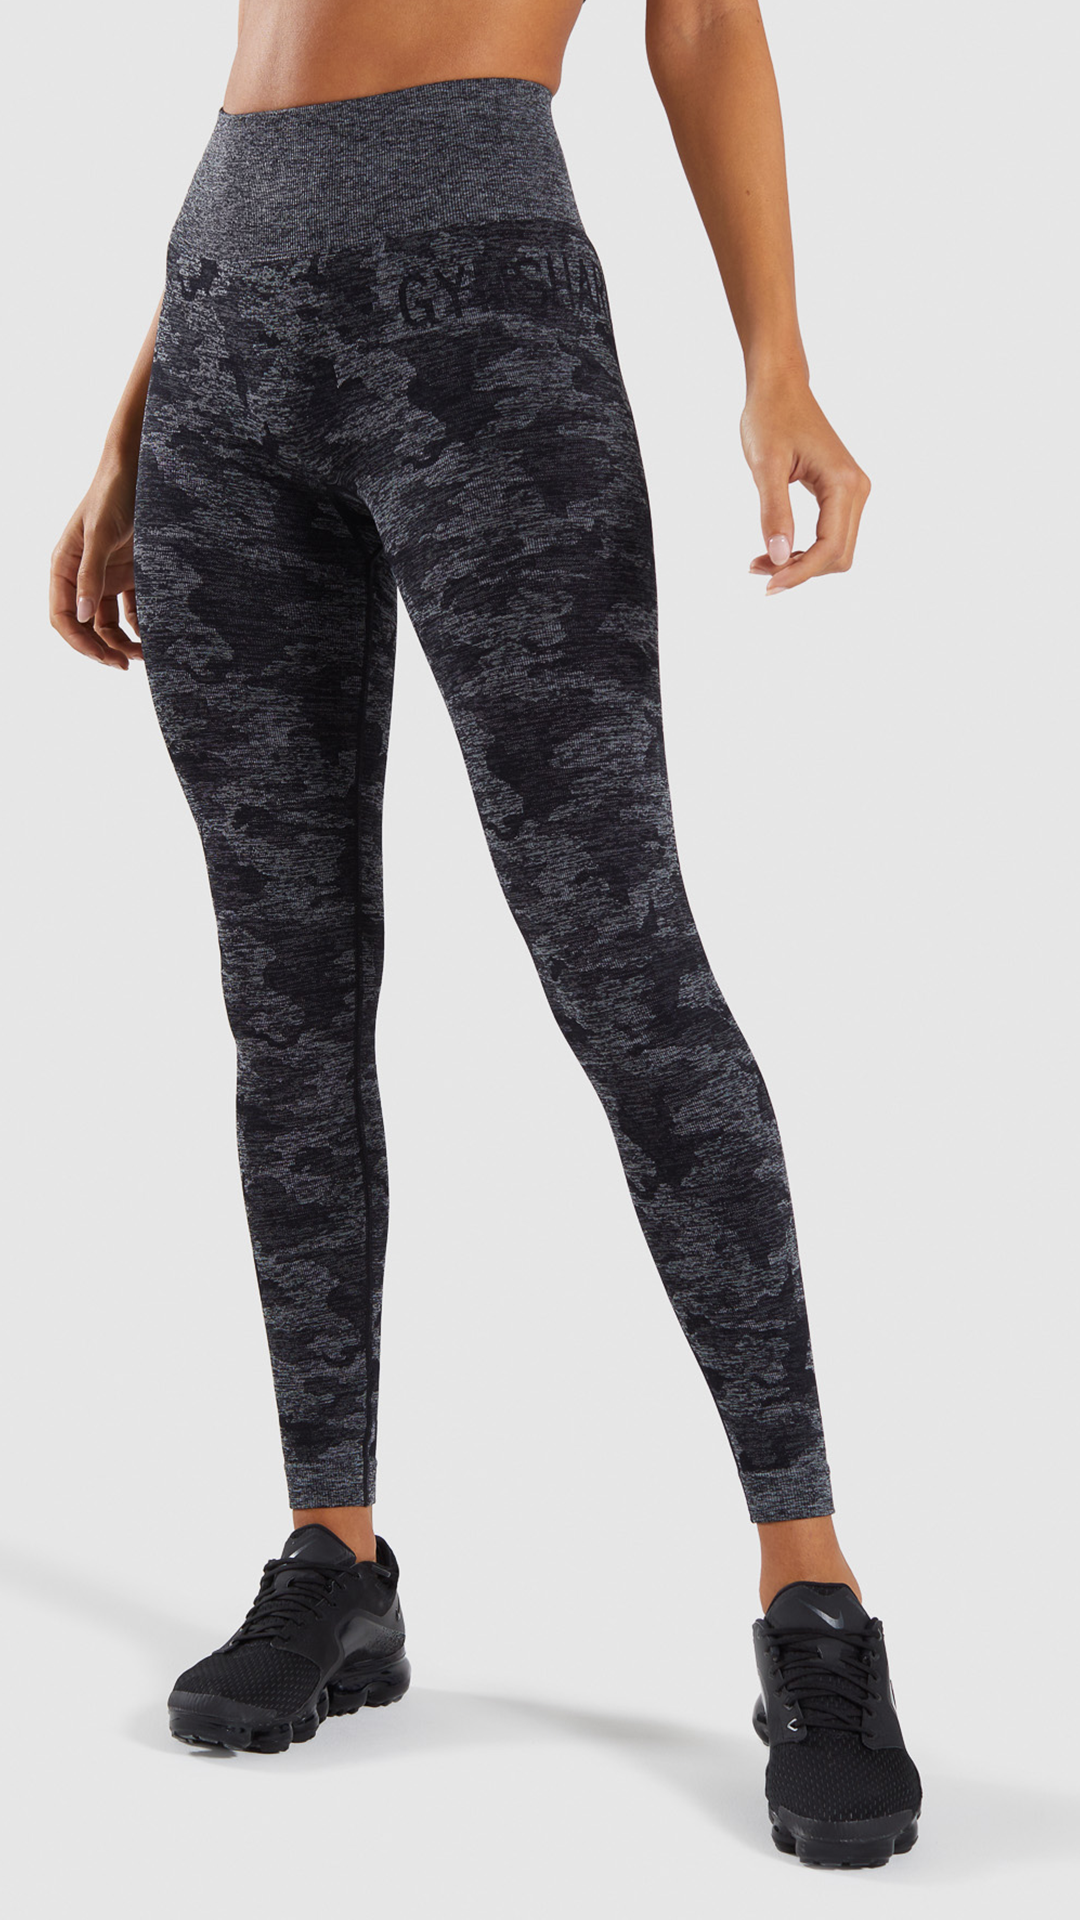 ea2acf03b5 The Camo Seamless Leggings, Black. #Gymshark #Gym #Sweat #Train #Perform  #Seamless #Exercise #Strength #Strong #Power #Fitness #OutfitInspiration ...